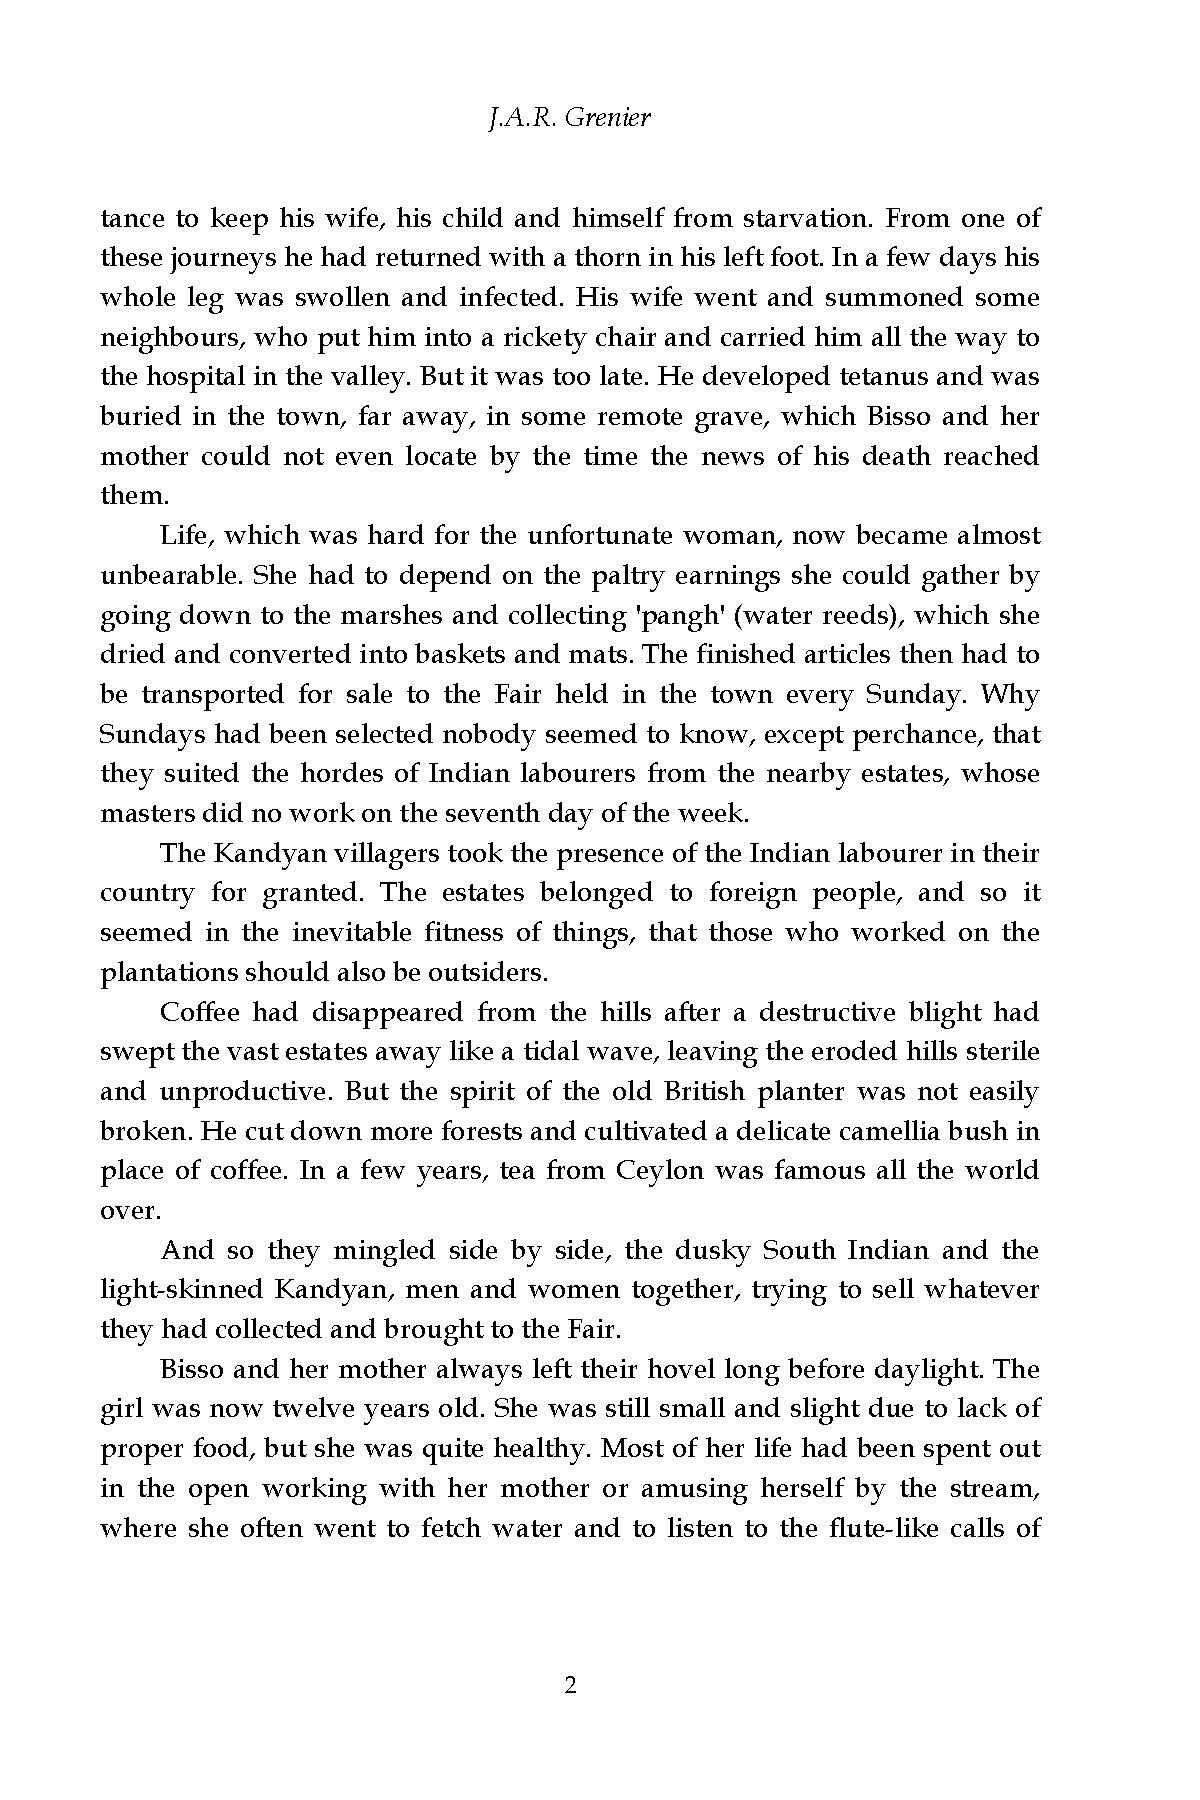 jgre050217 (final text)_Page_04.jpg